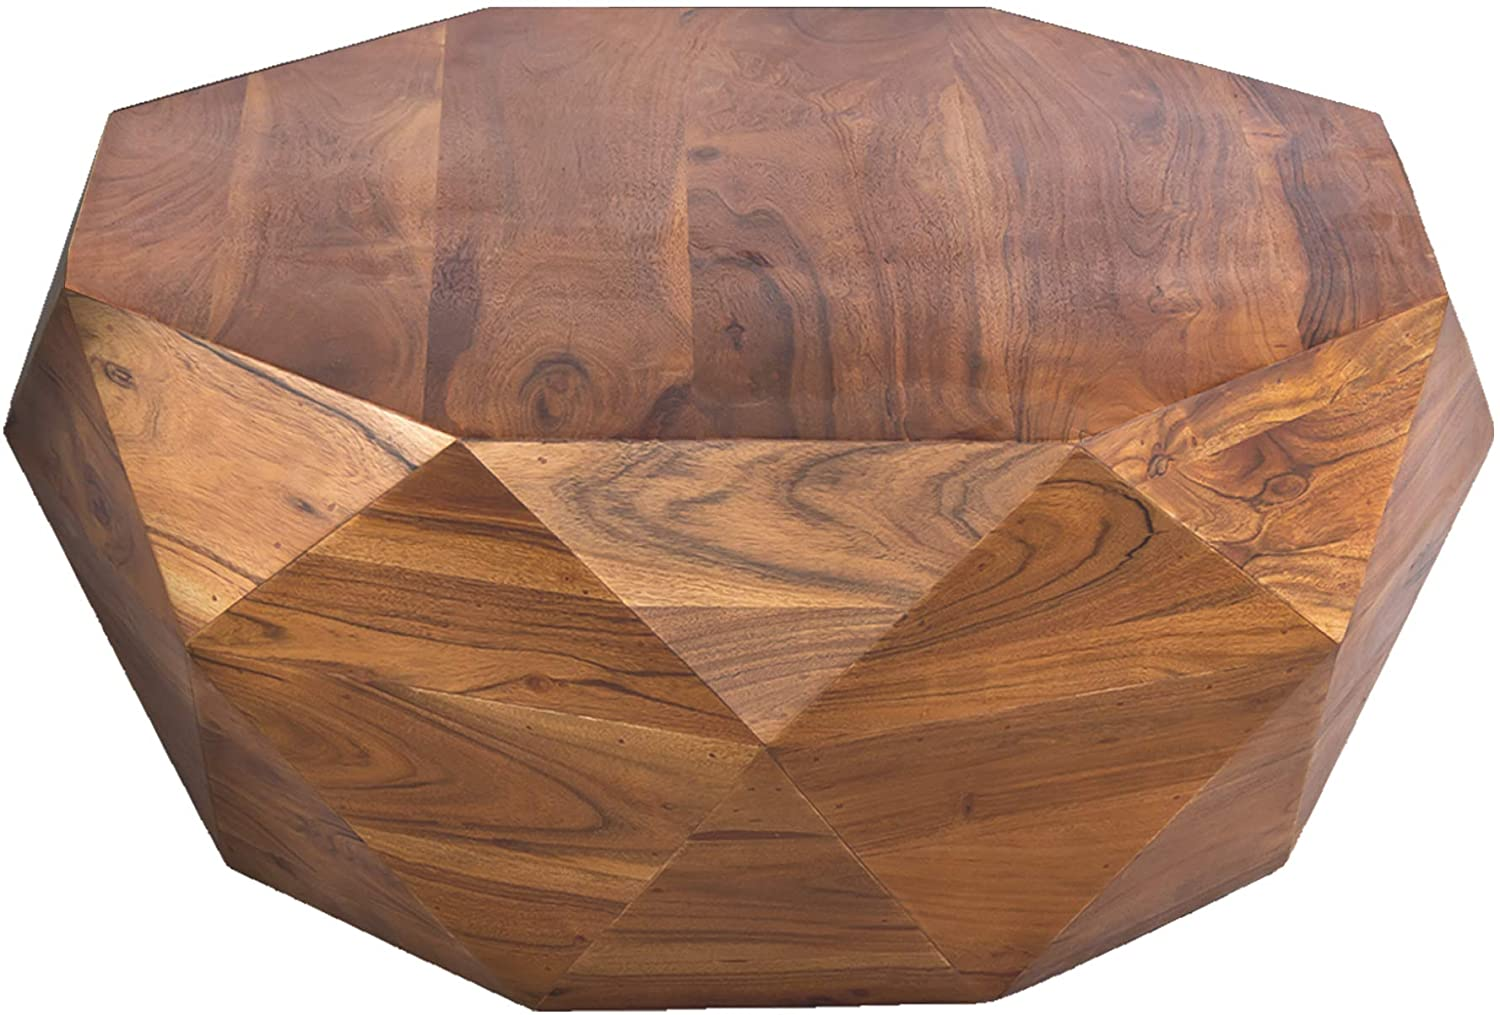 The Urban Port Diamond Shape Acacia Wood Coffee Table With Smooth Top Dark Brown Furniture Decor